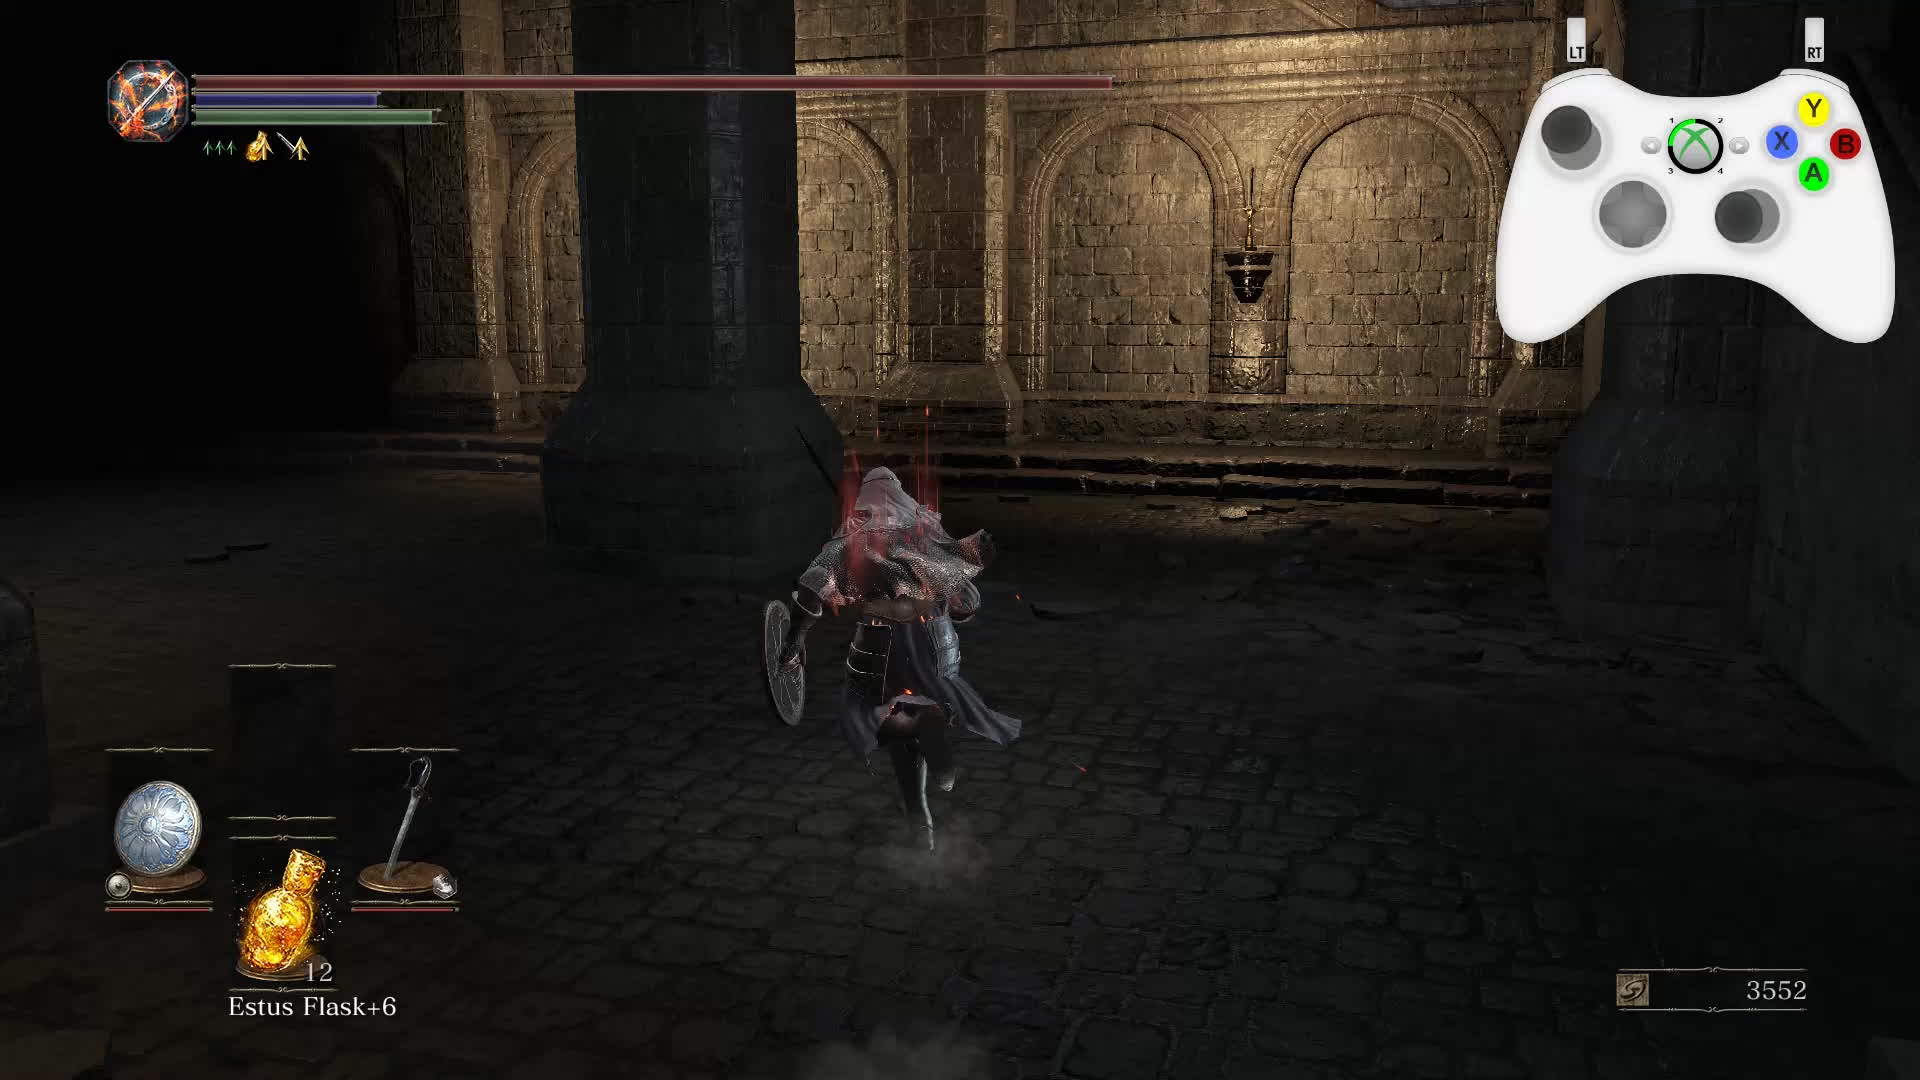 darksouls3, why does this have to be so useless GIFs